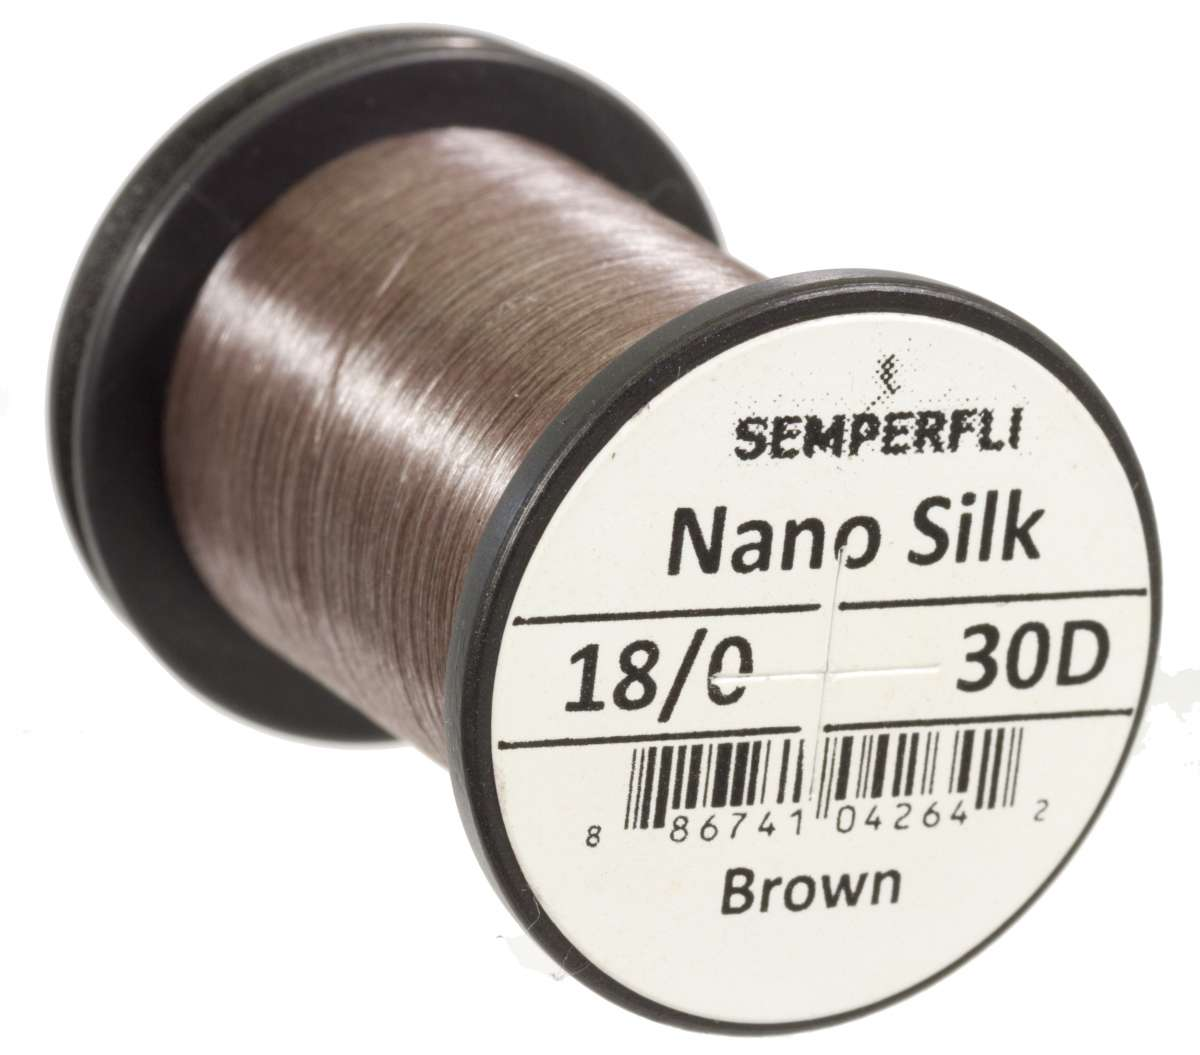 Nano Silk 30D - 18/0 Brown